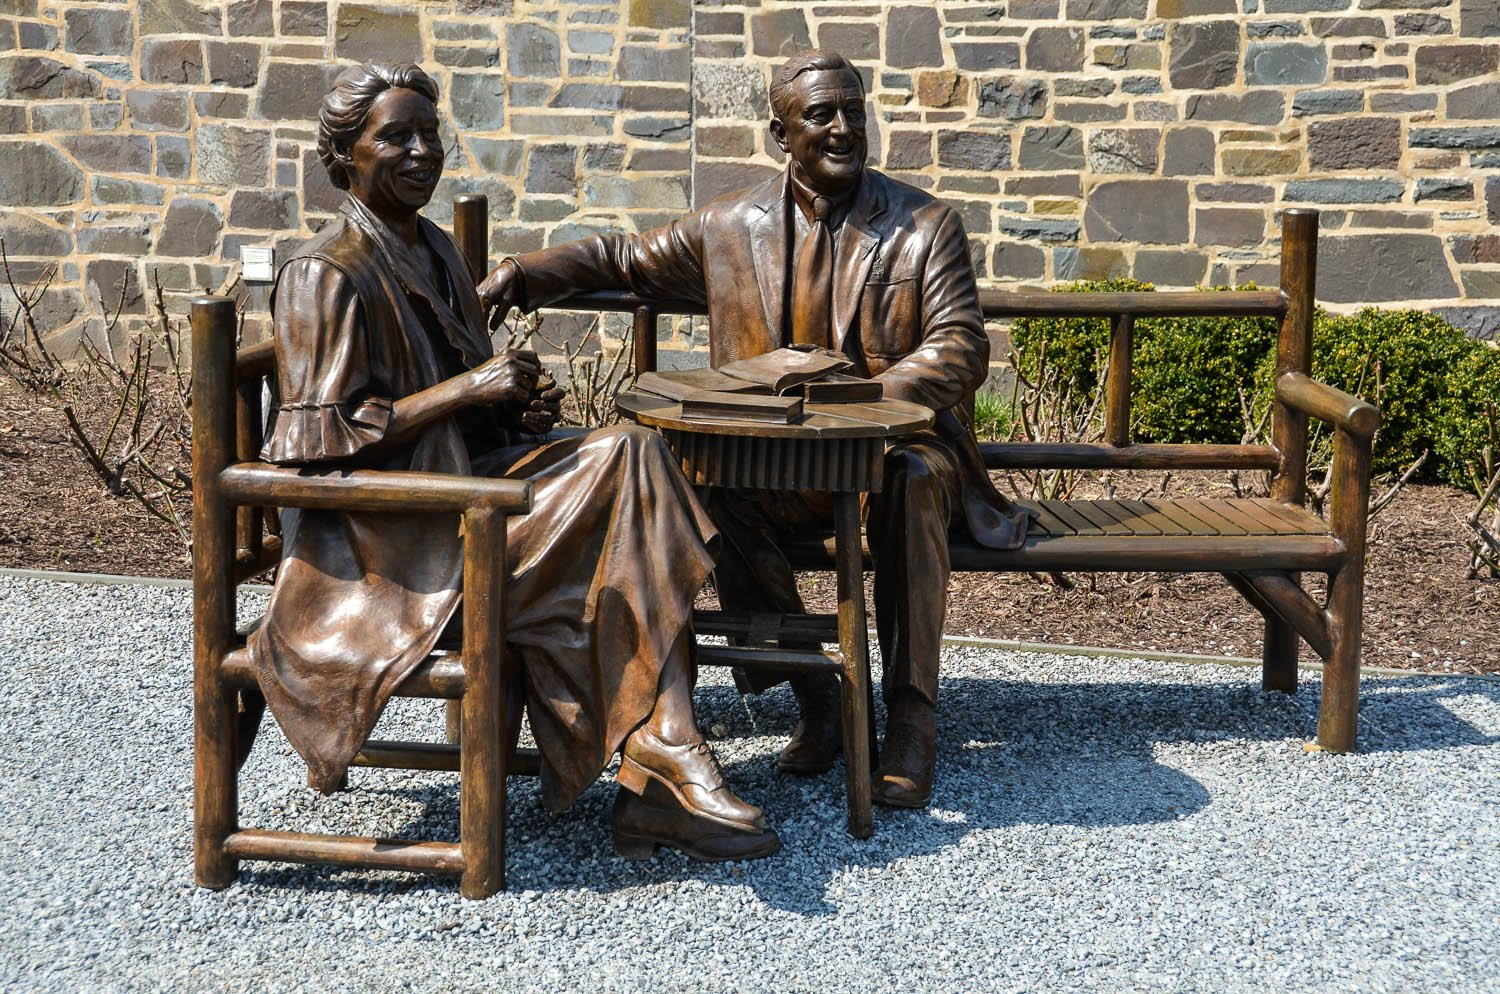 Life size statue of FDR and Eleanor Roosevelt at the Henry Wallace Visitor Center, modeled after an August 1933 photograph of the Roosevelts in Hyde Park